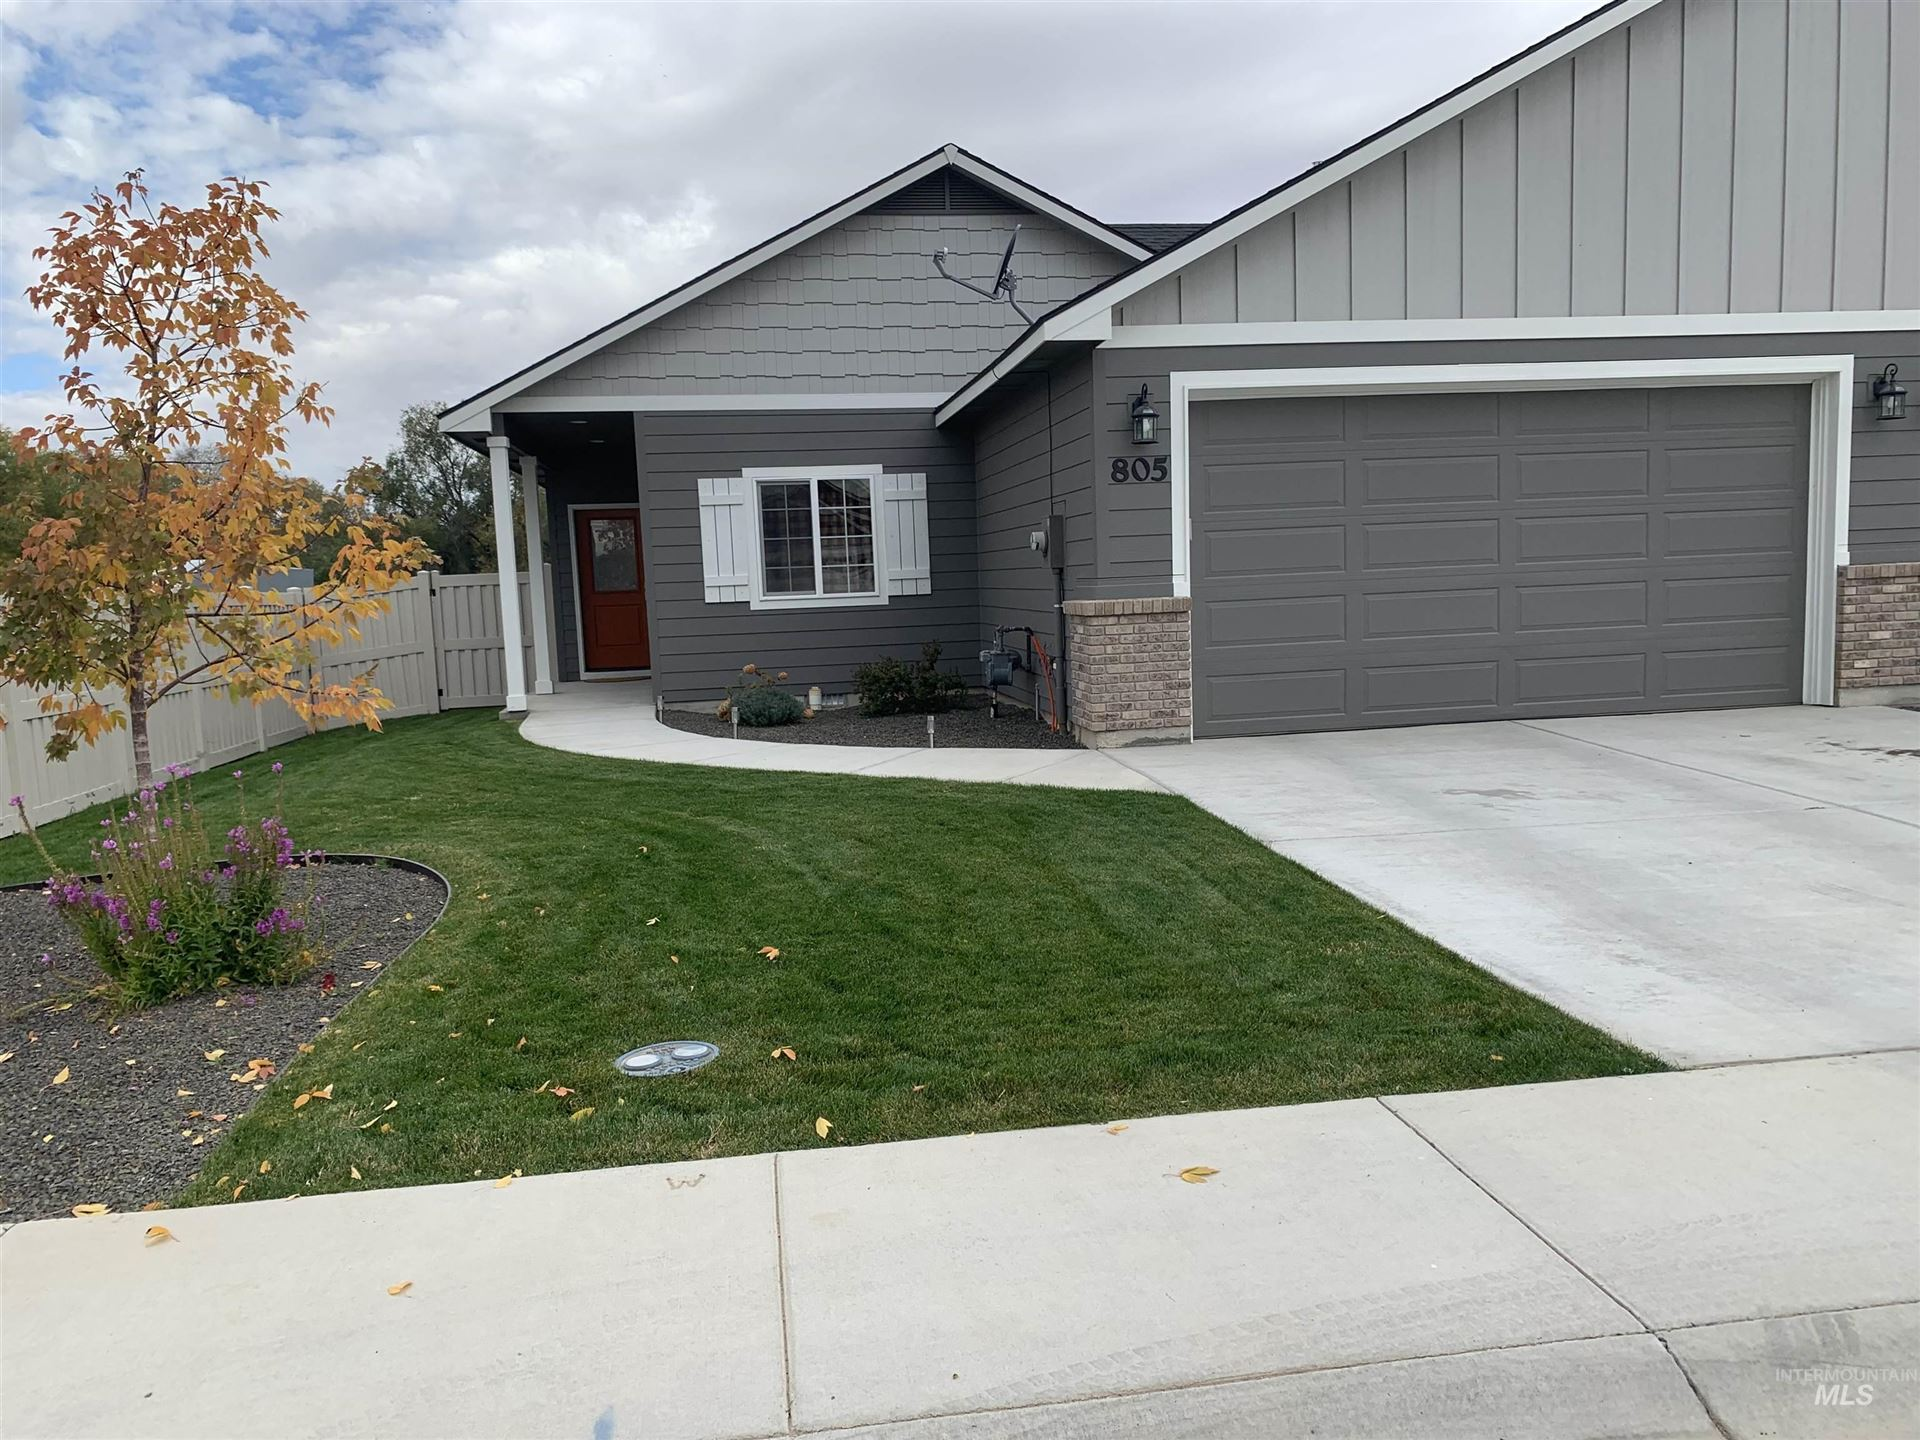 Photo of 805 N 14th St, Payette, ID 83661 (MLS # 98823105)